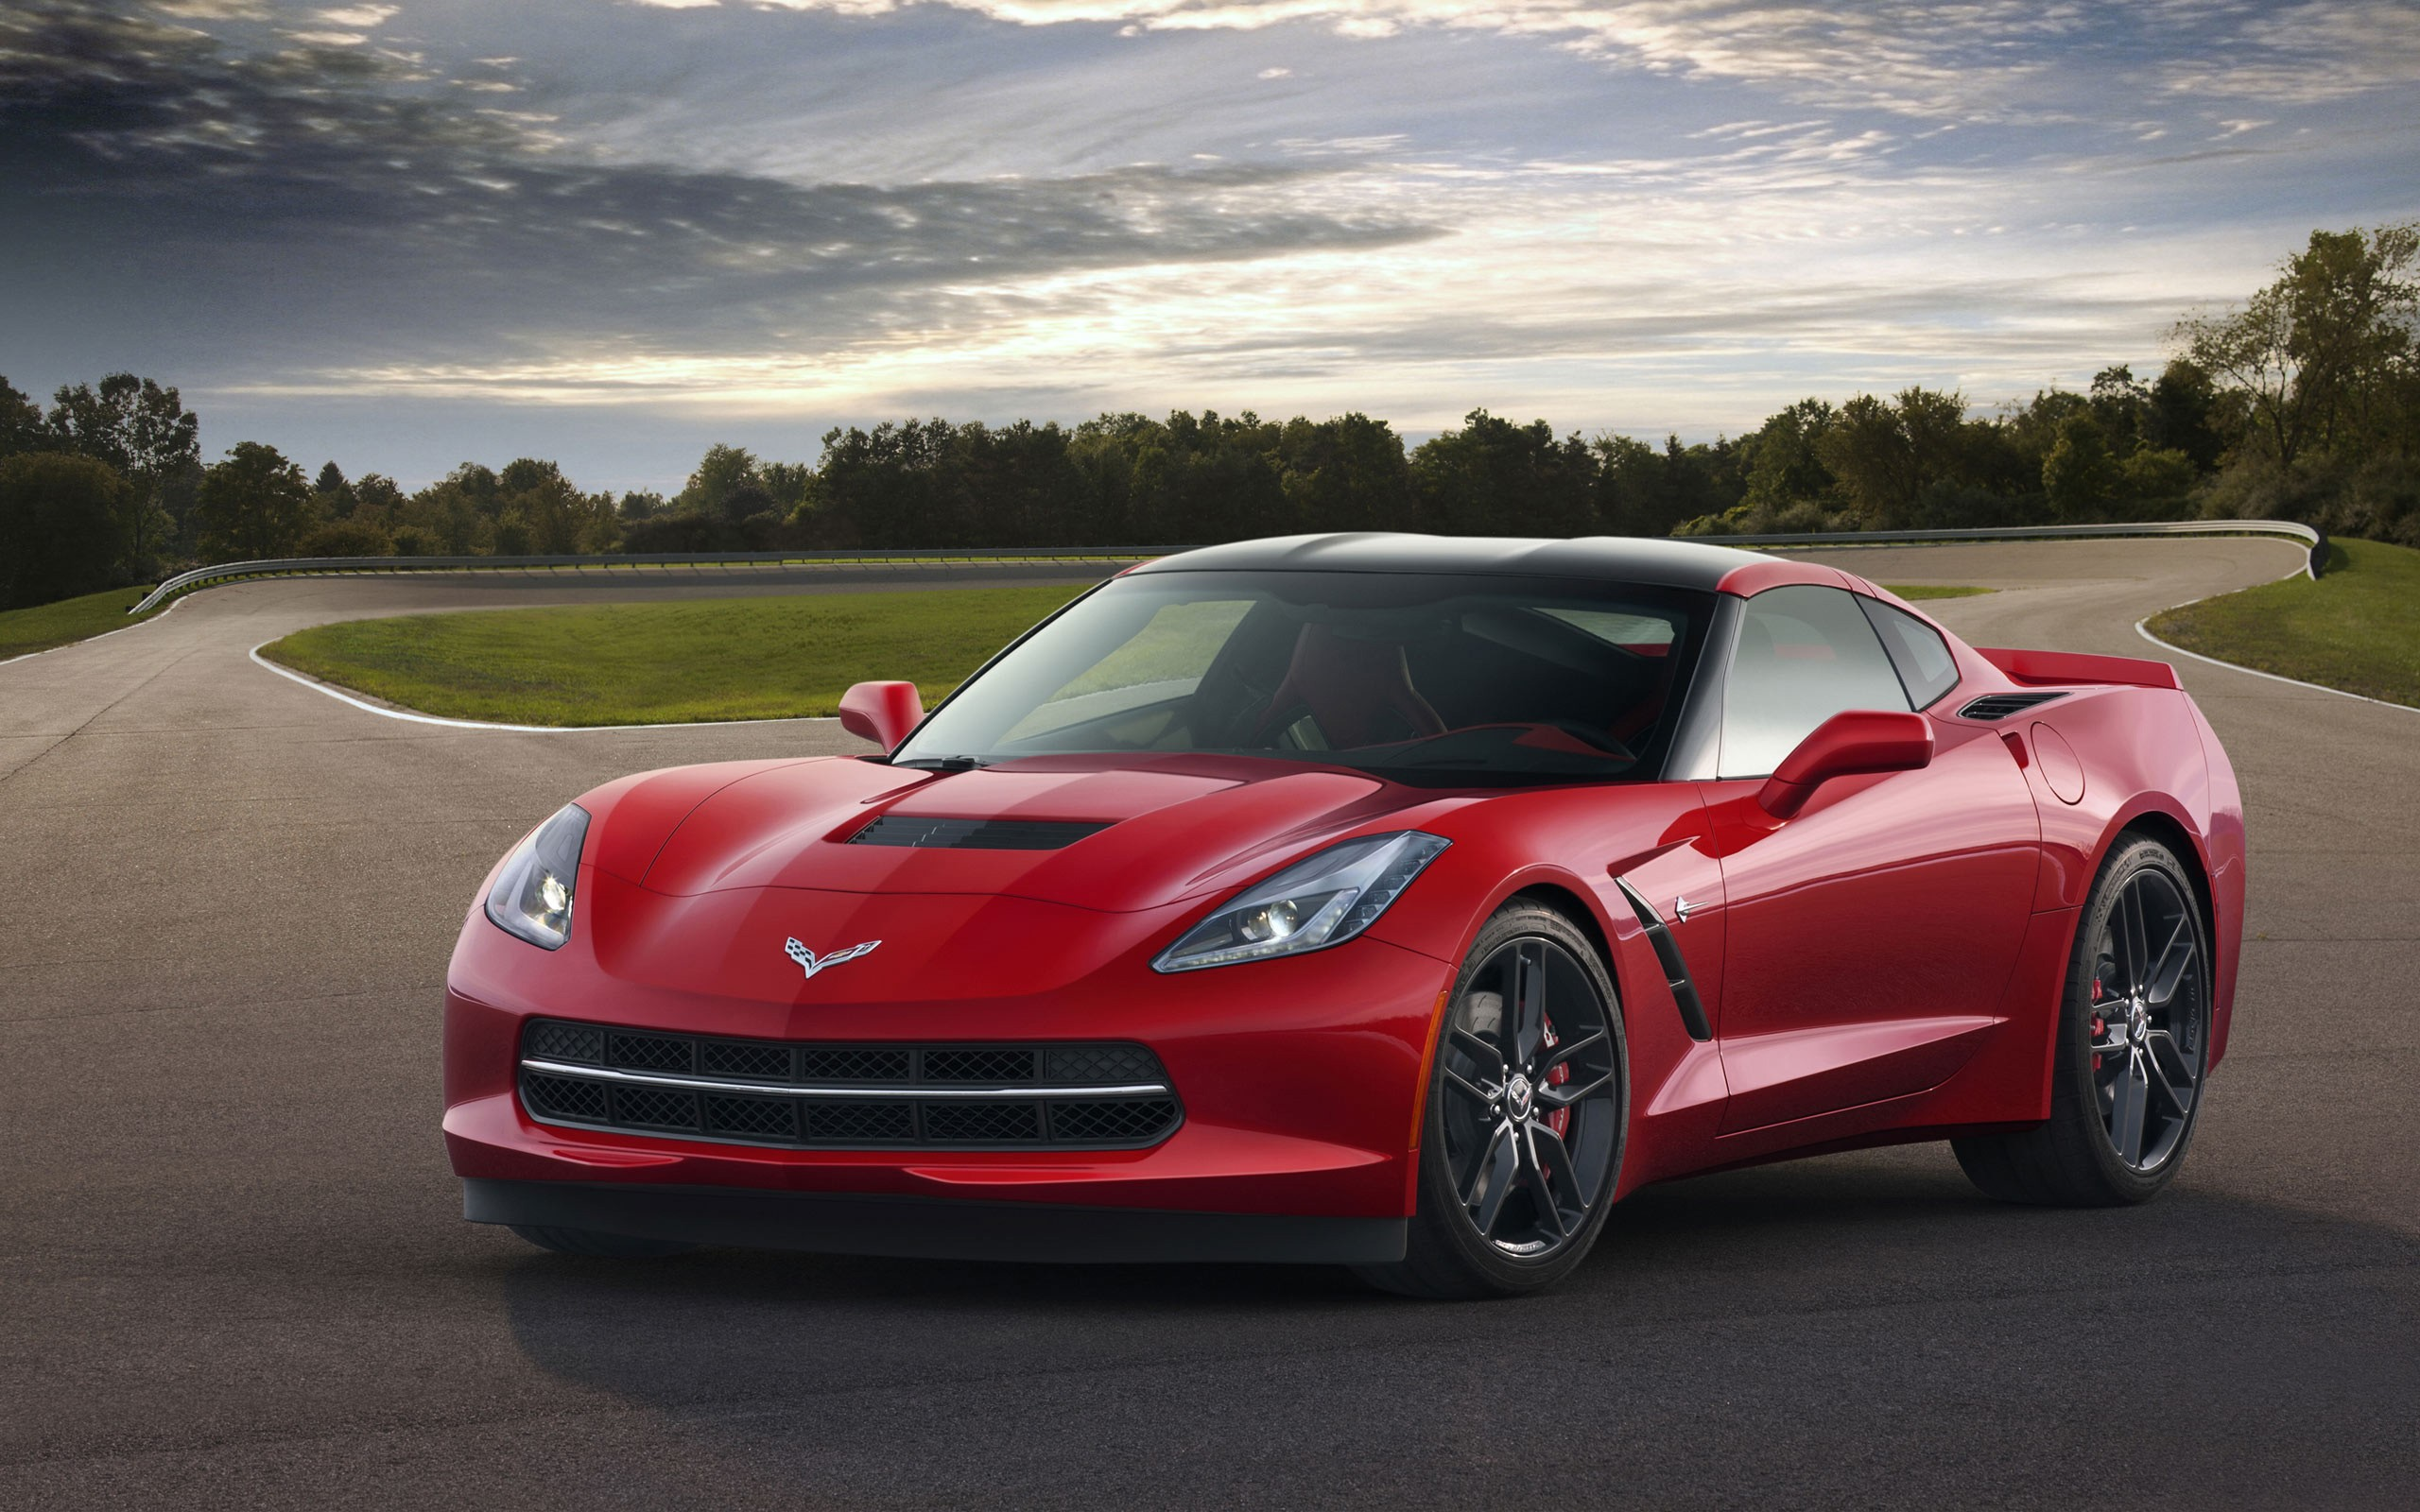 corvette wallpaper hd - photo #29